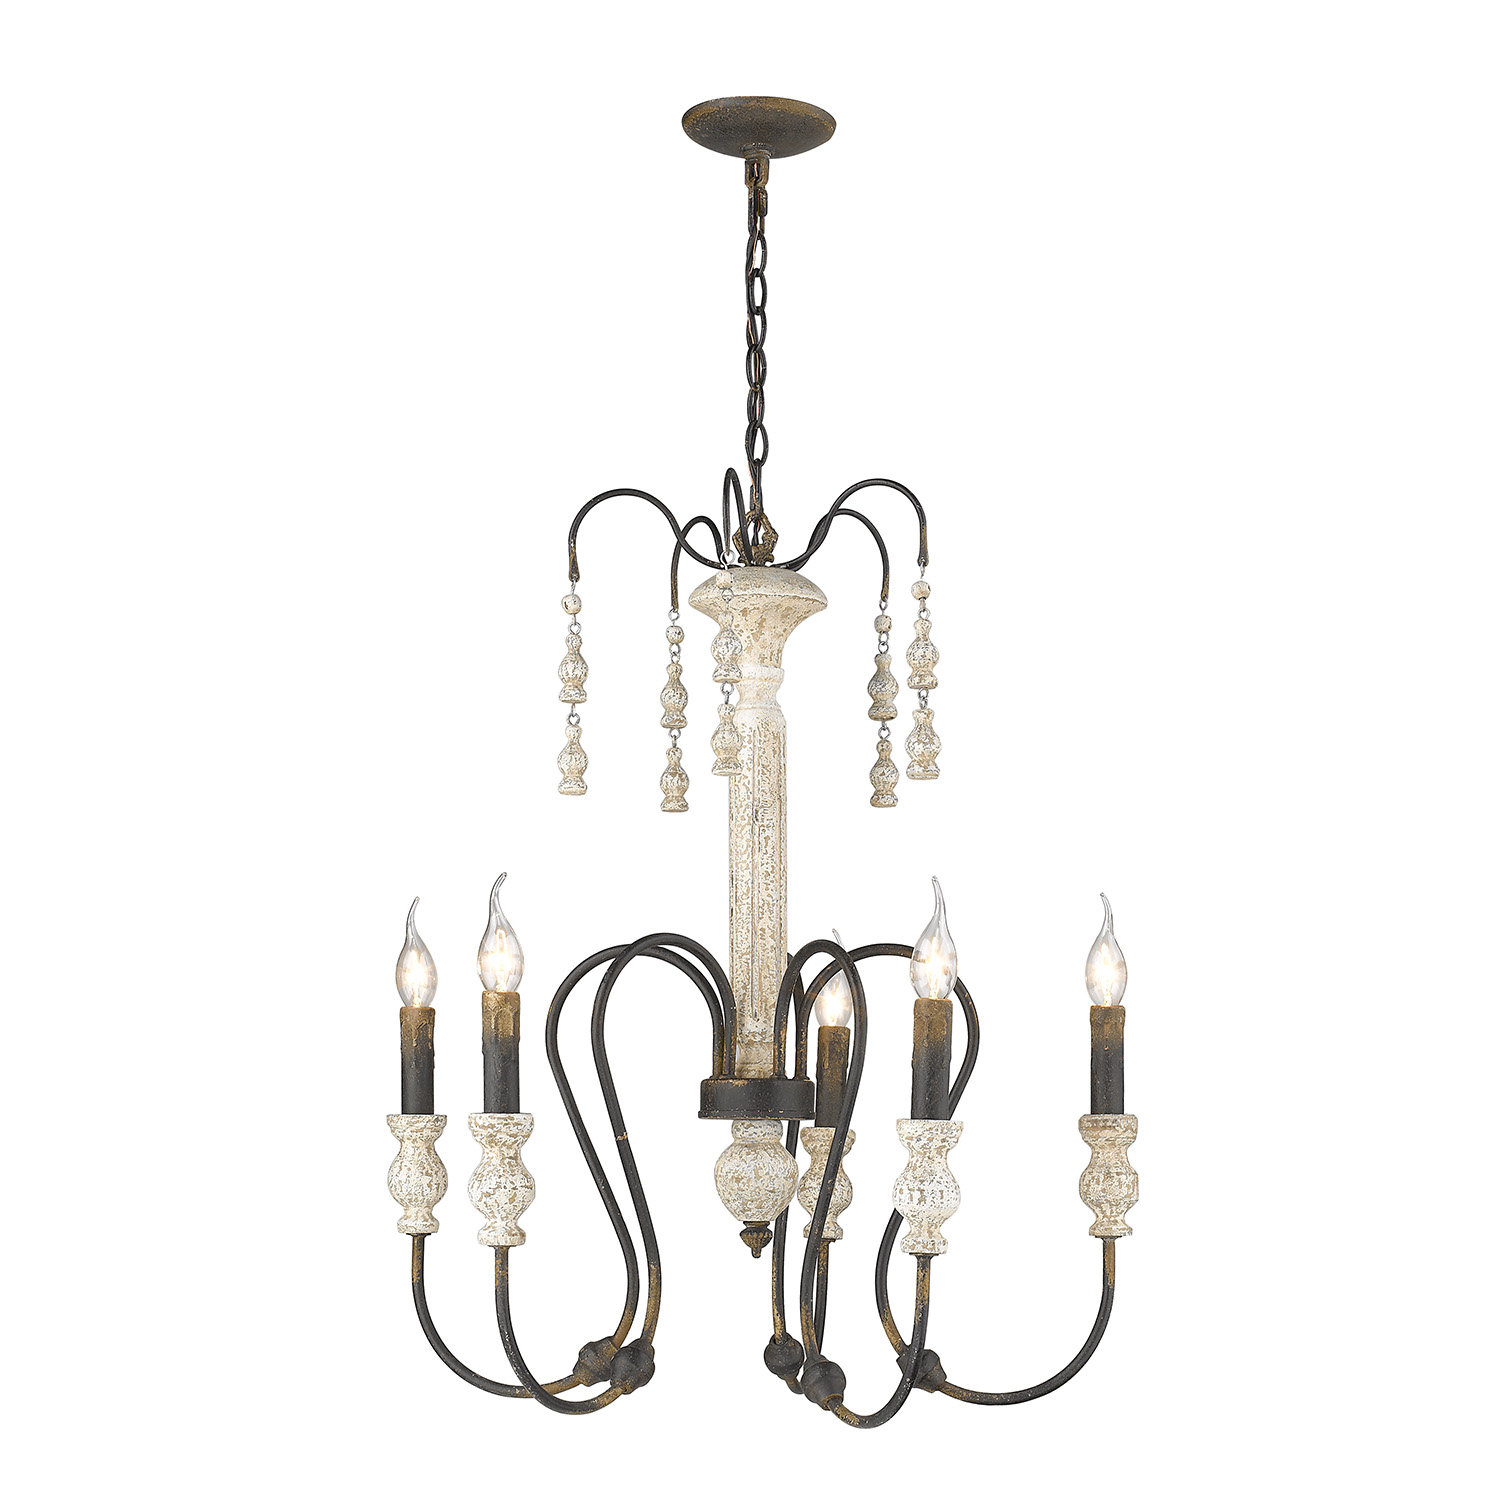 Sherrie 5-Light Candle Style Chandelier with Corneau 5-Light Chandeliers (Image 27 of 30)